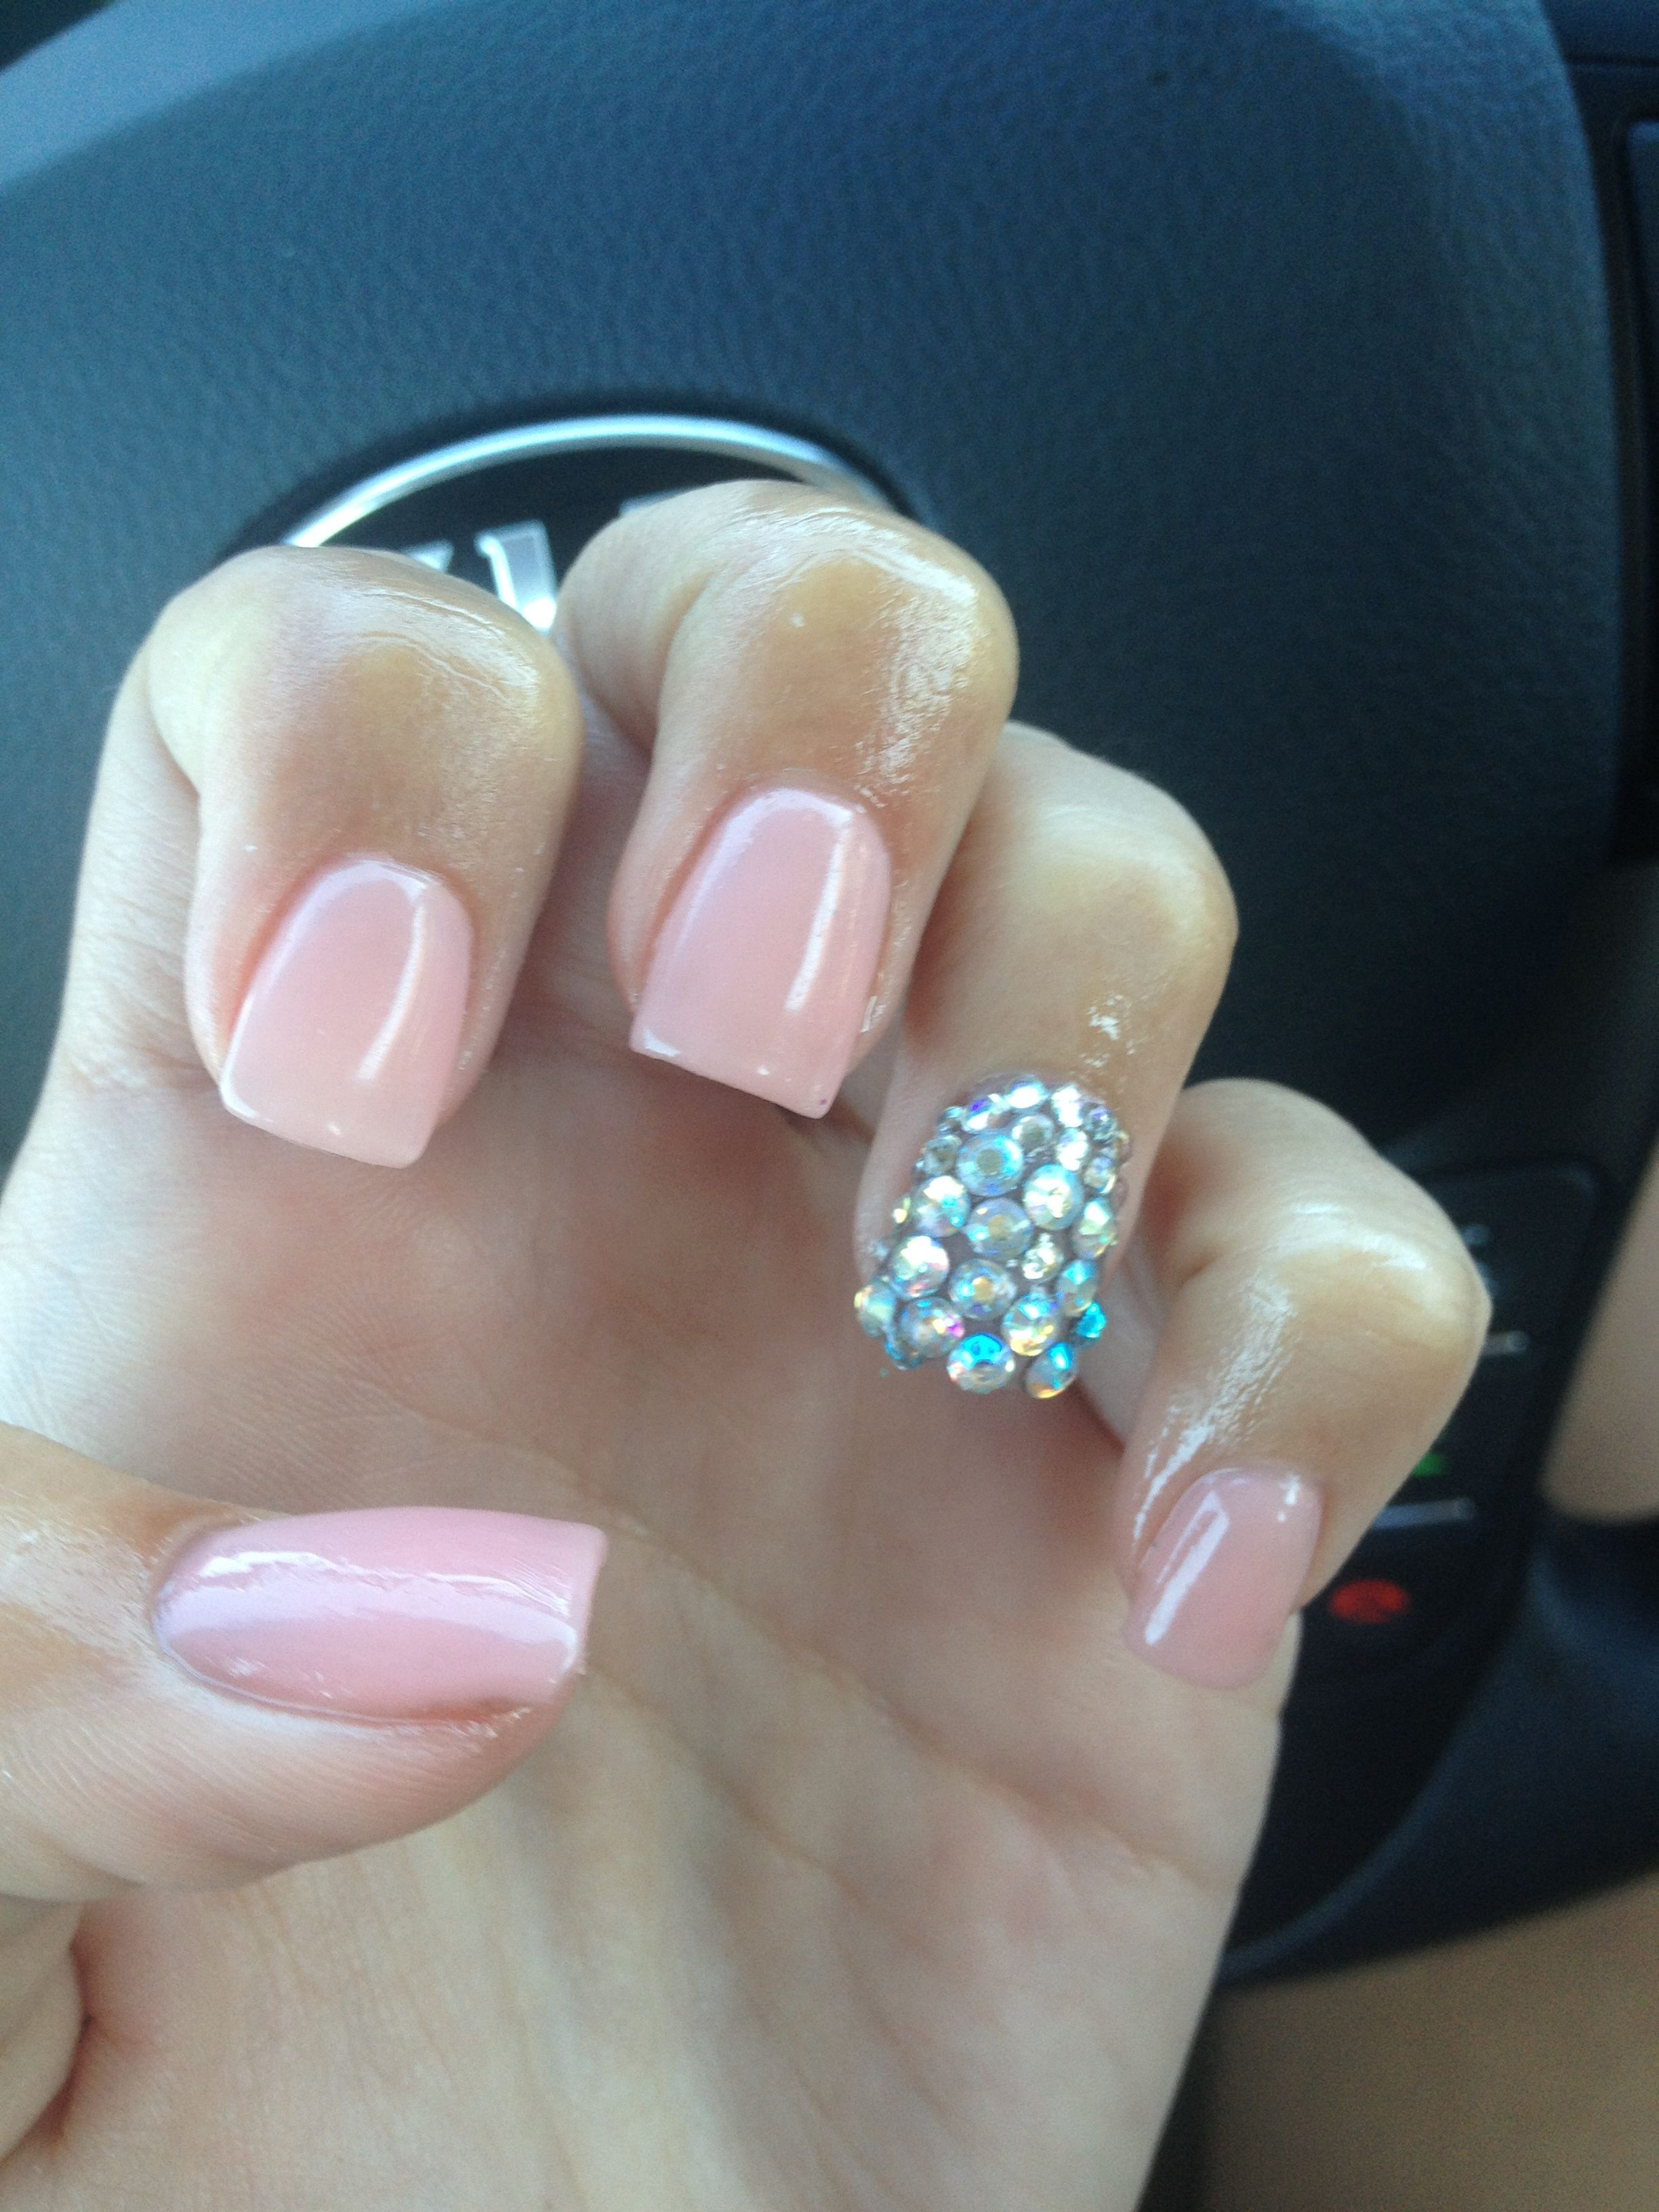 Nude nails with rhinestones on ring fingers http://www.pinterest.com ...